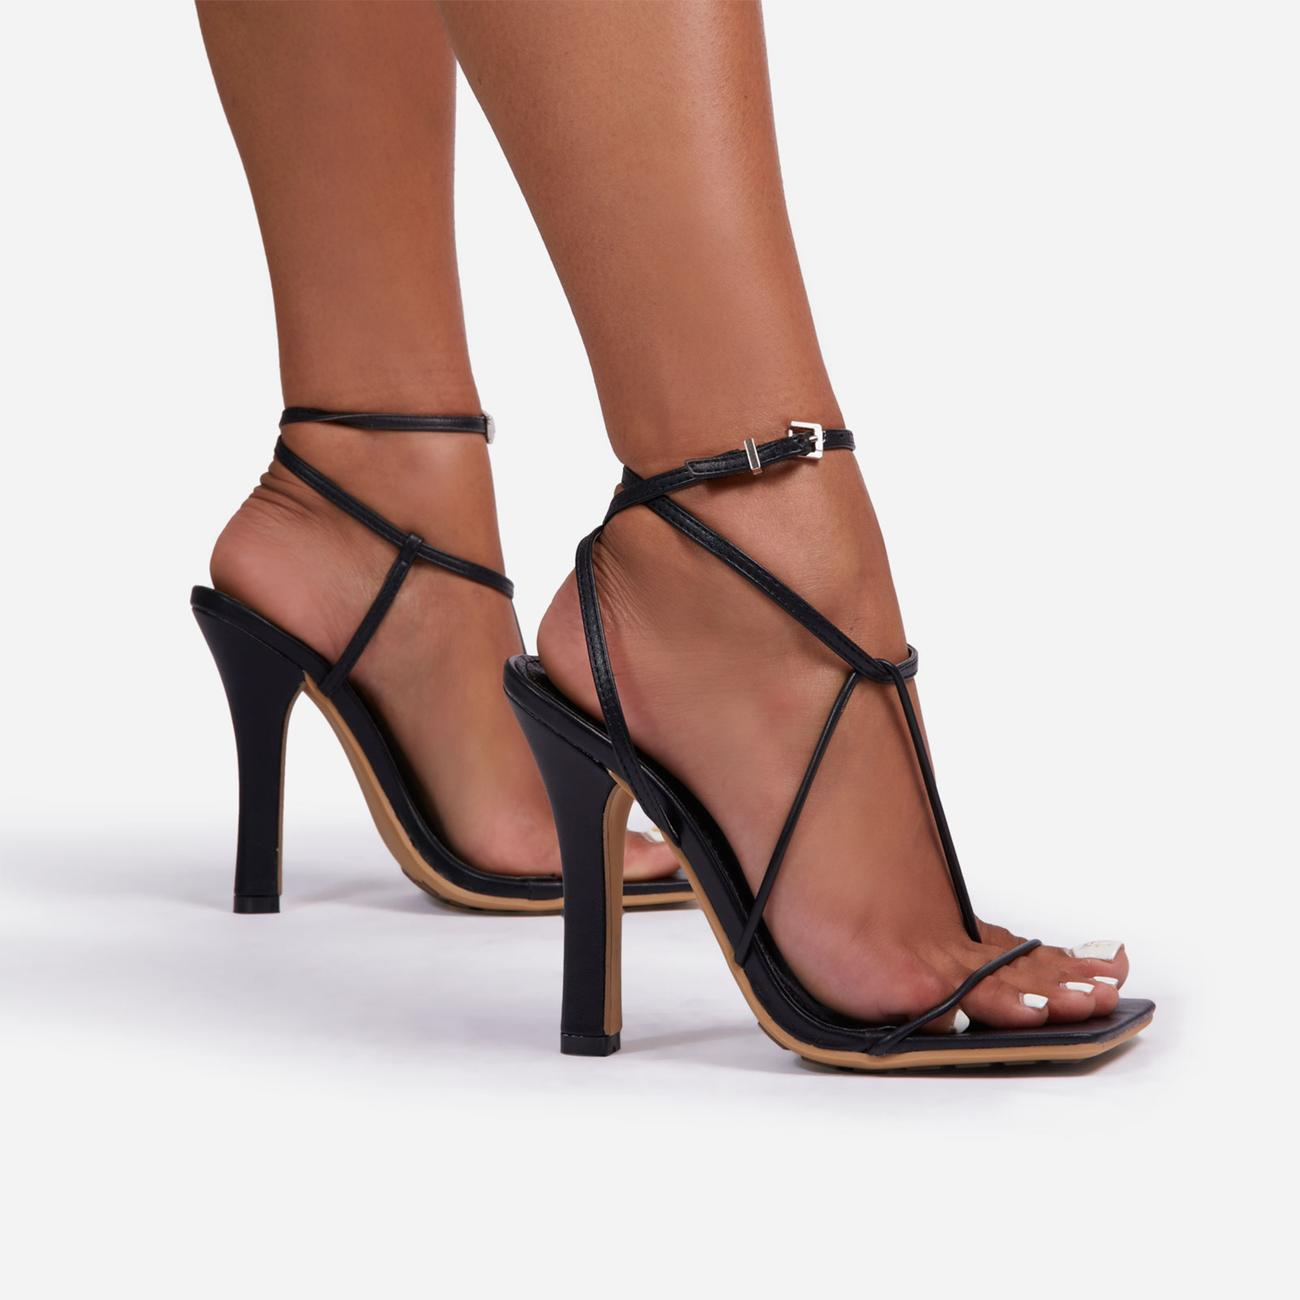 Glambition Strappy Square Toe Track Sole Heel In Black Faux Leather Image 2